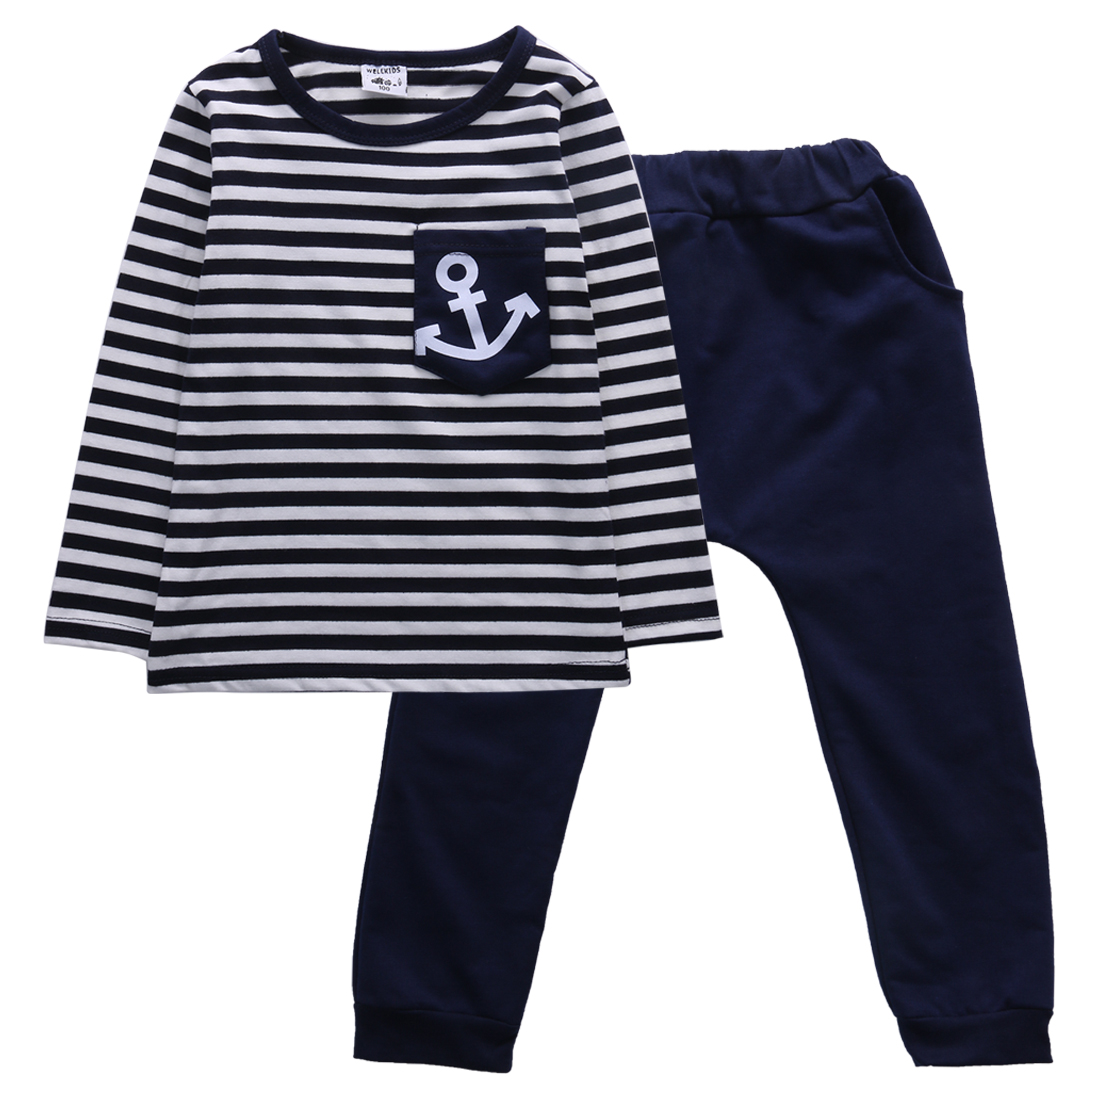 feca5a1ce Toddler Kids Baby Boy Anchor Striped T-shirt Tops+Marine Pants Trousers  Outfits 2pcs Boys Long Sleeve Stripe Outfit Clothing Set